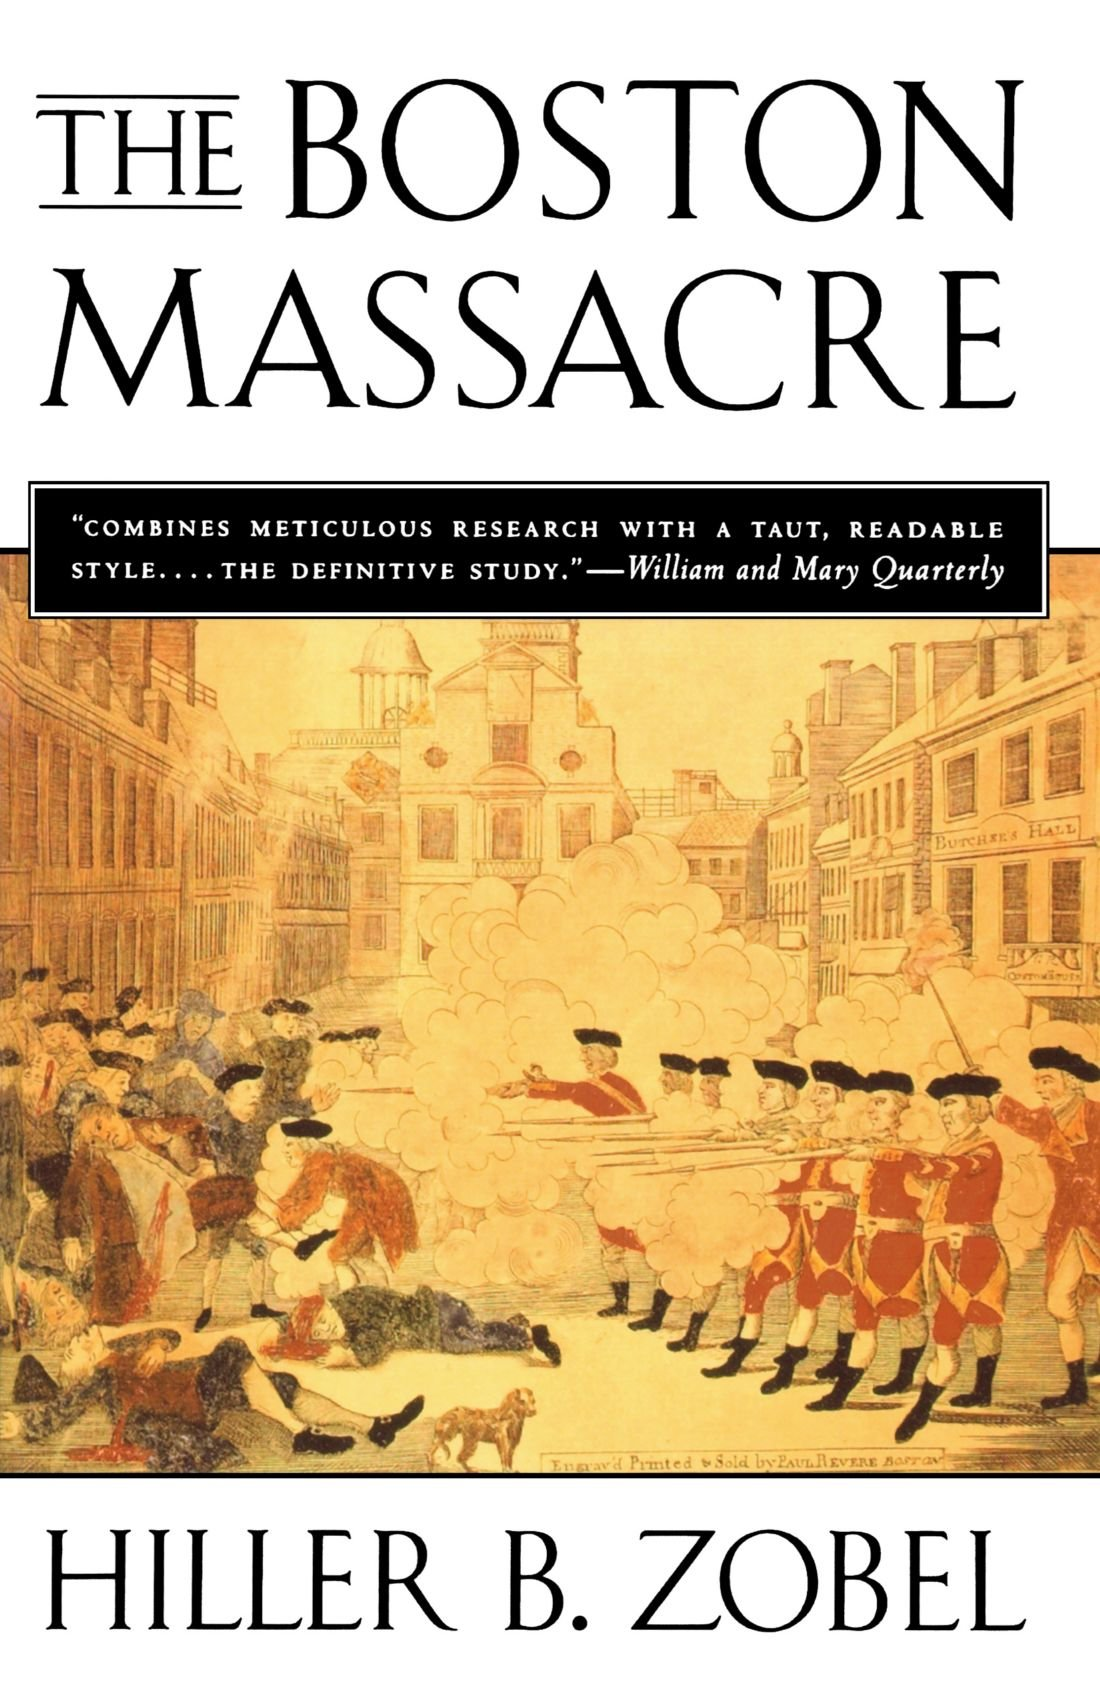 the boston massacre hiller b zobel com books